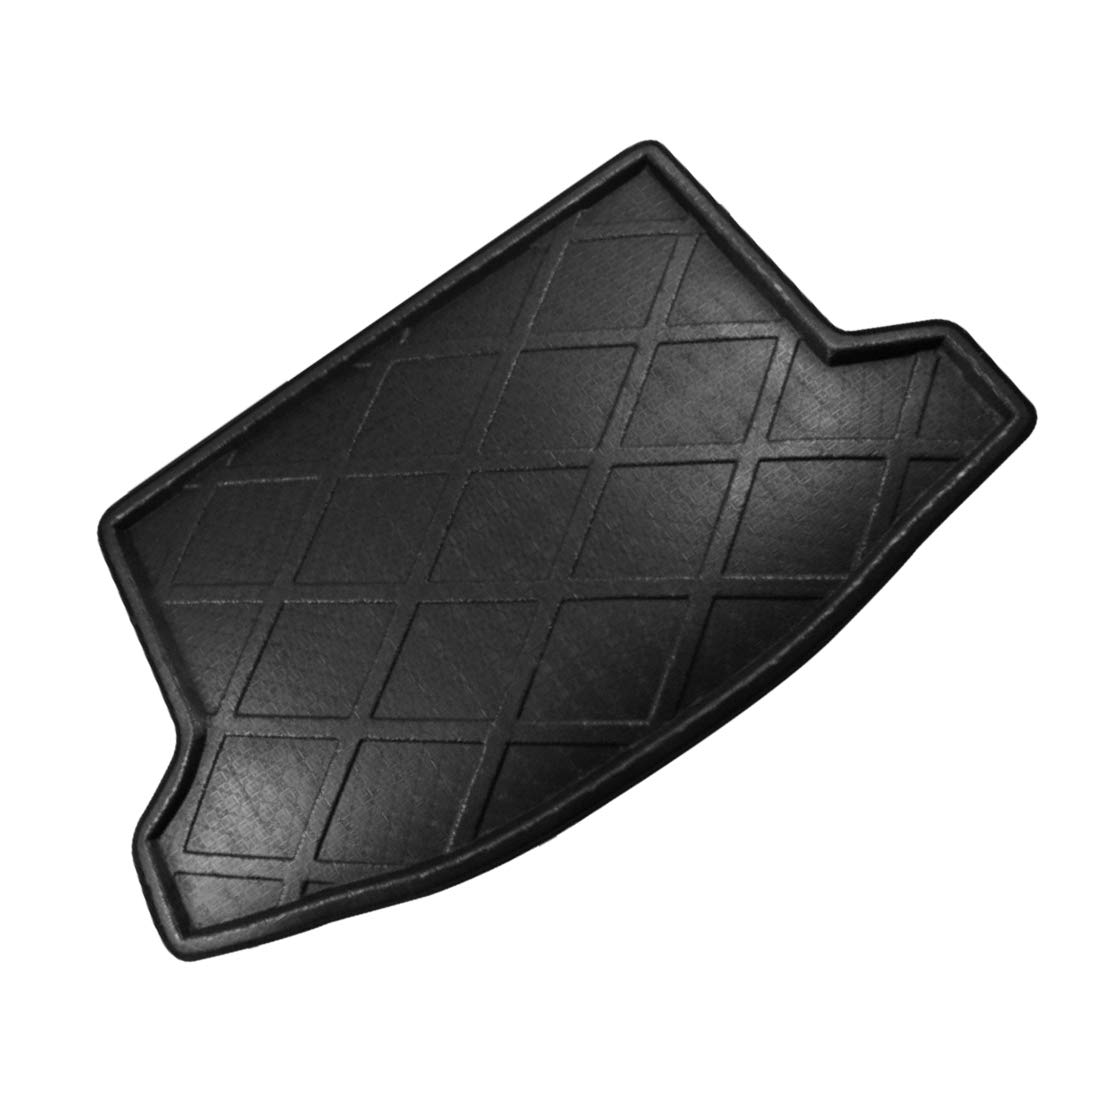 cheapest Boot Mat Rear Trunk Liner Cargo Floor Tray Carpet Mud Kick Protector Cover For Ford Escape Kuga 2013 2014 2015 2016 2017 18-2019